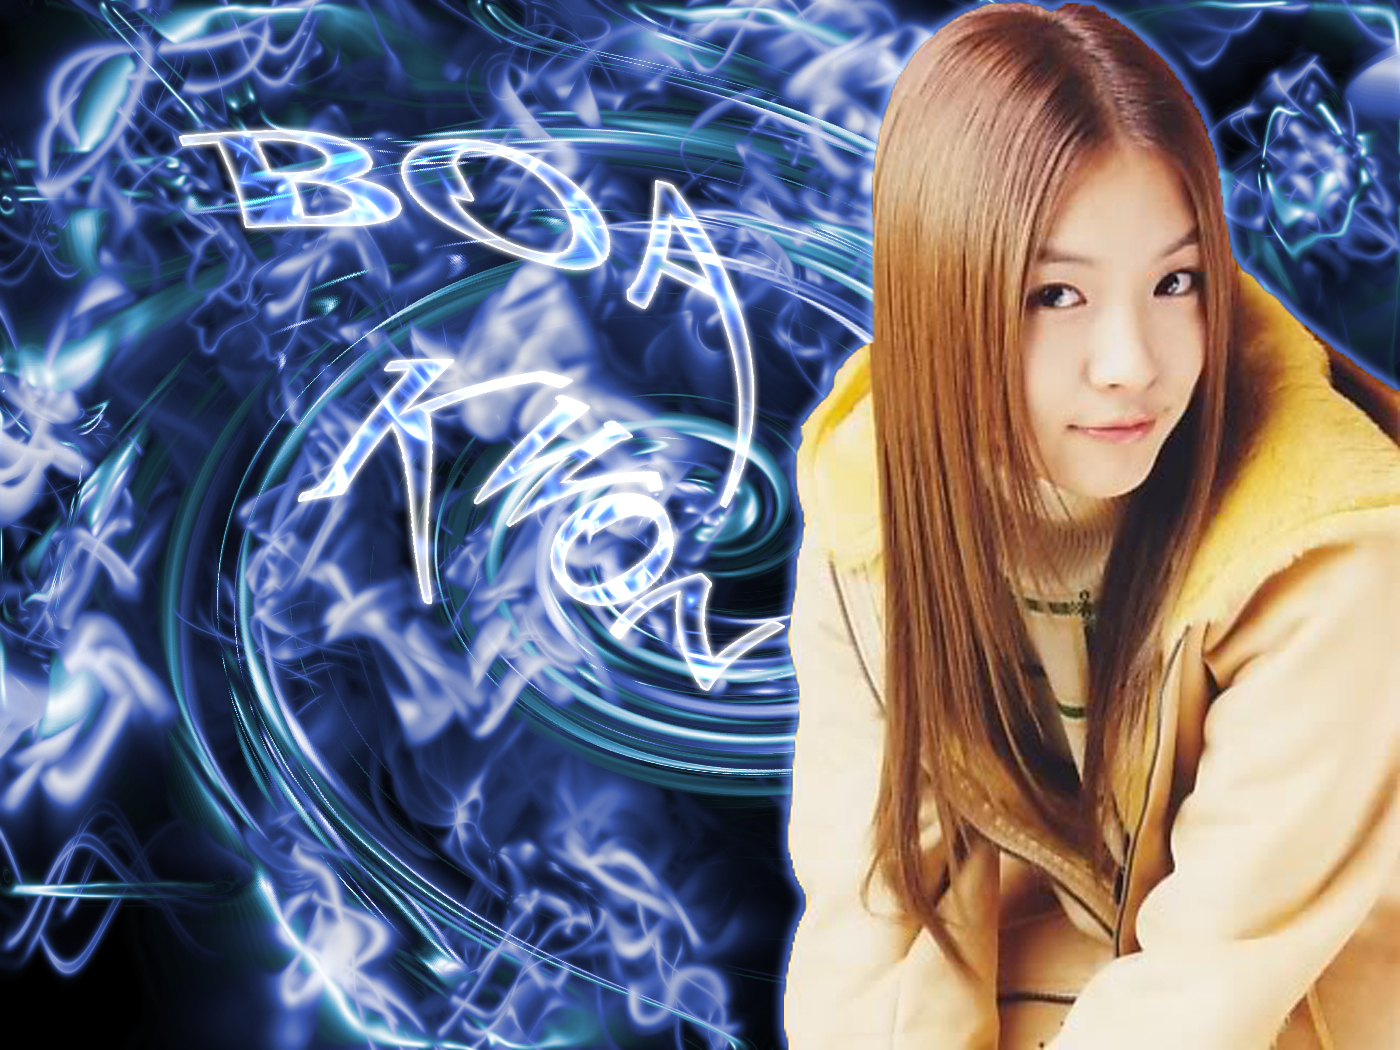 Boa Wallpapers HD 1400x1050 px